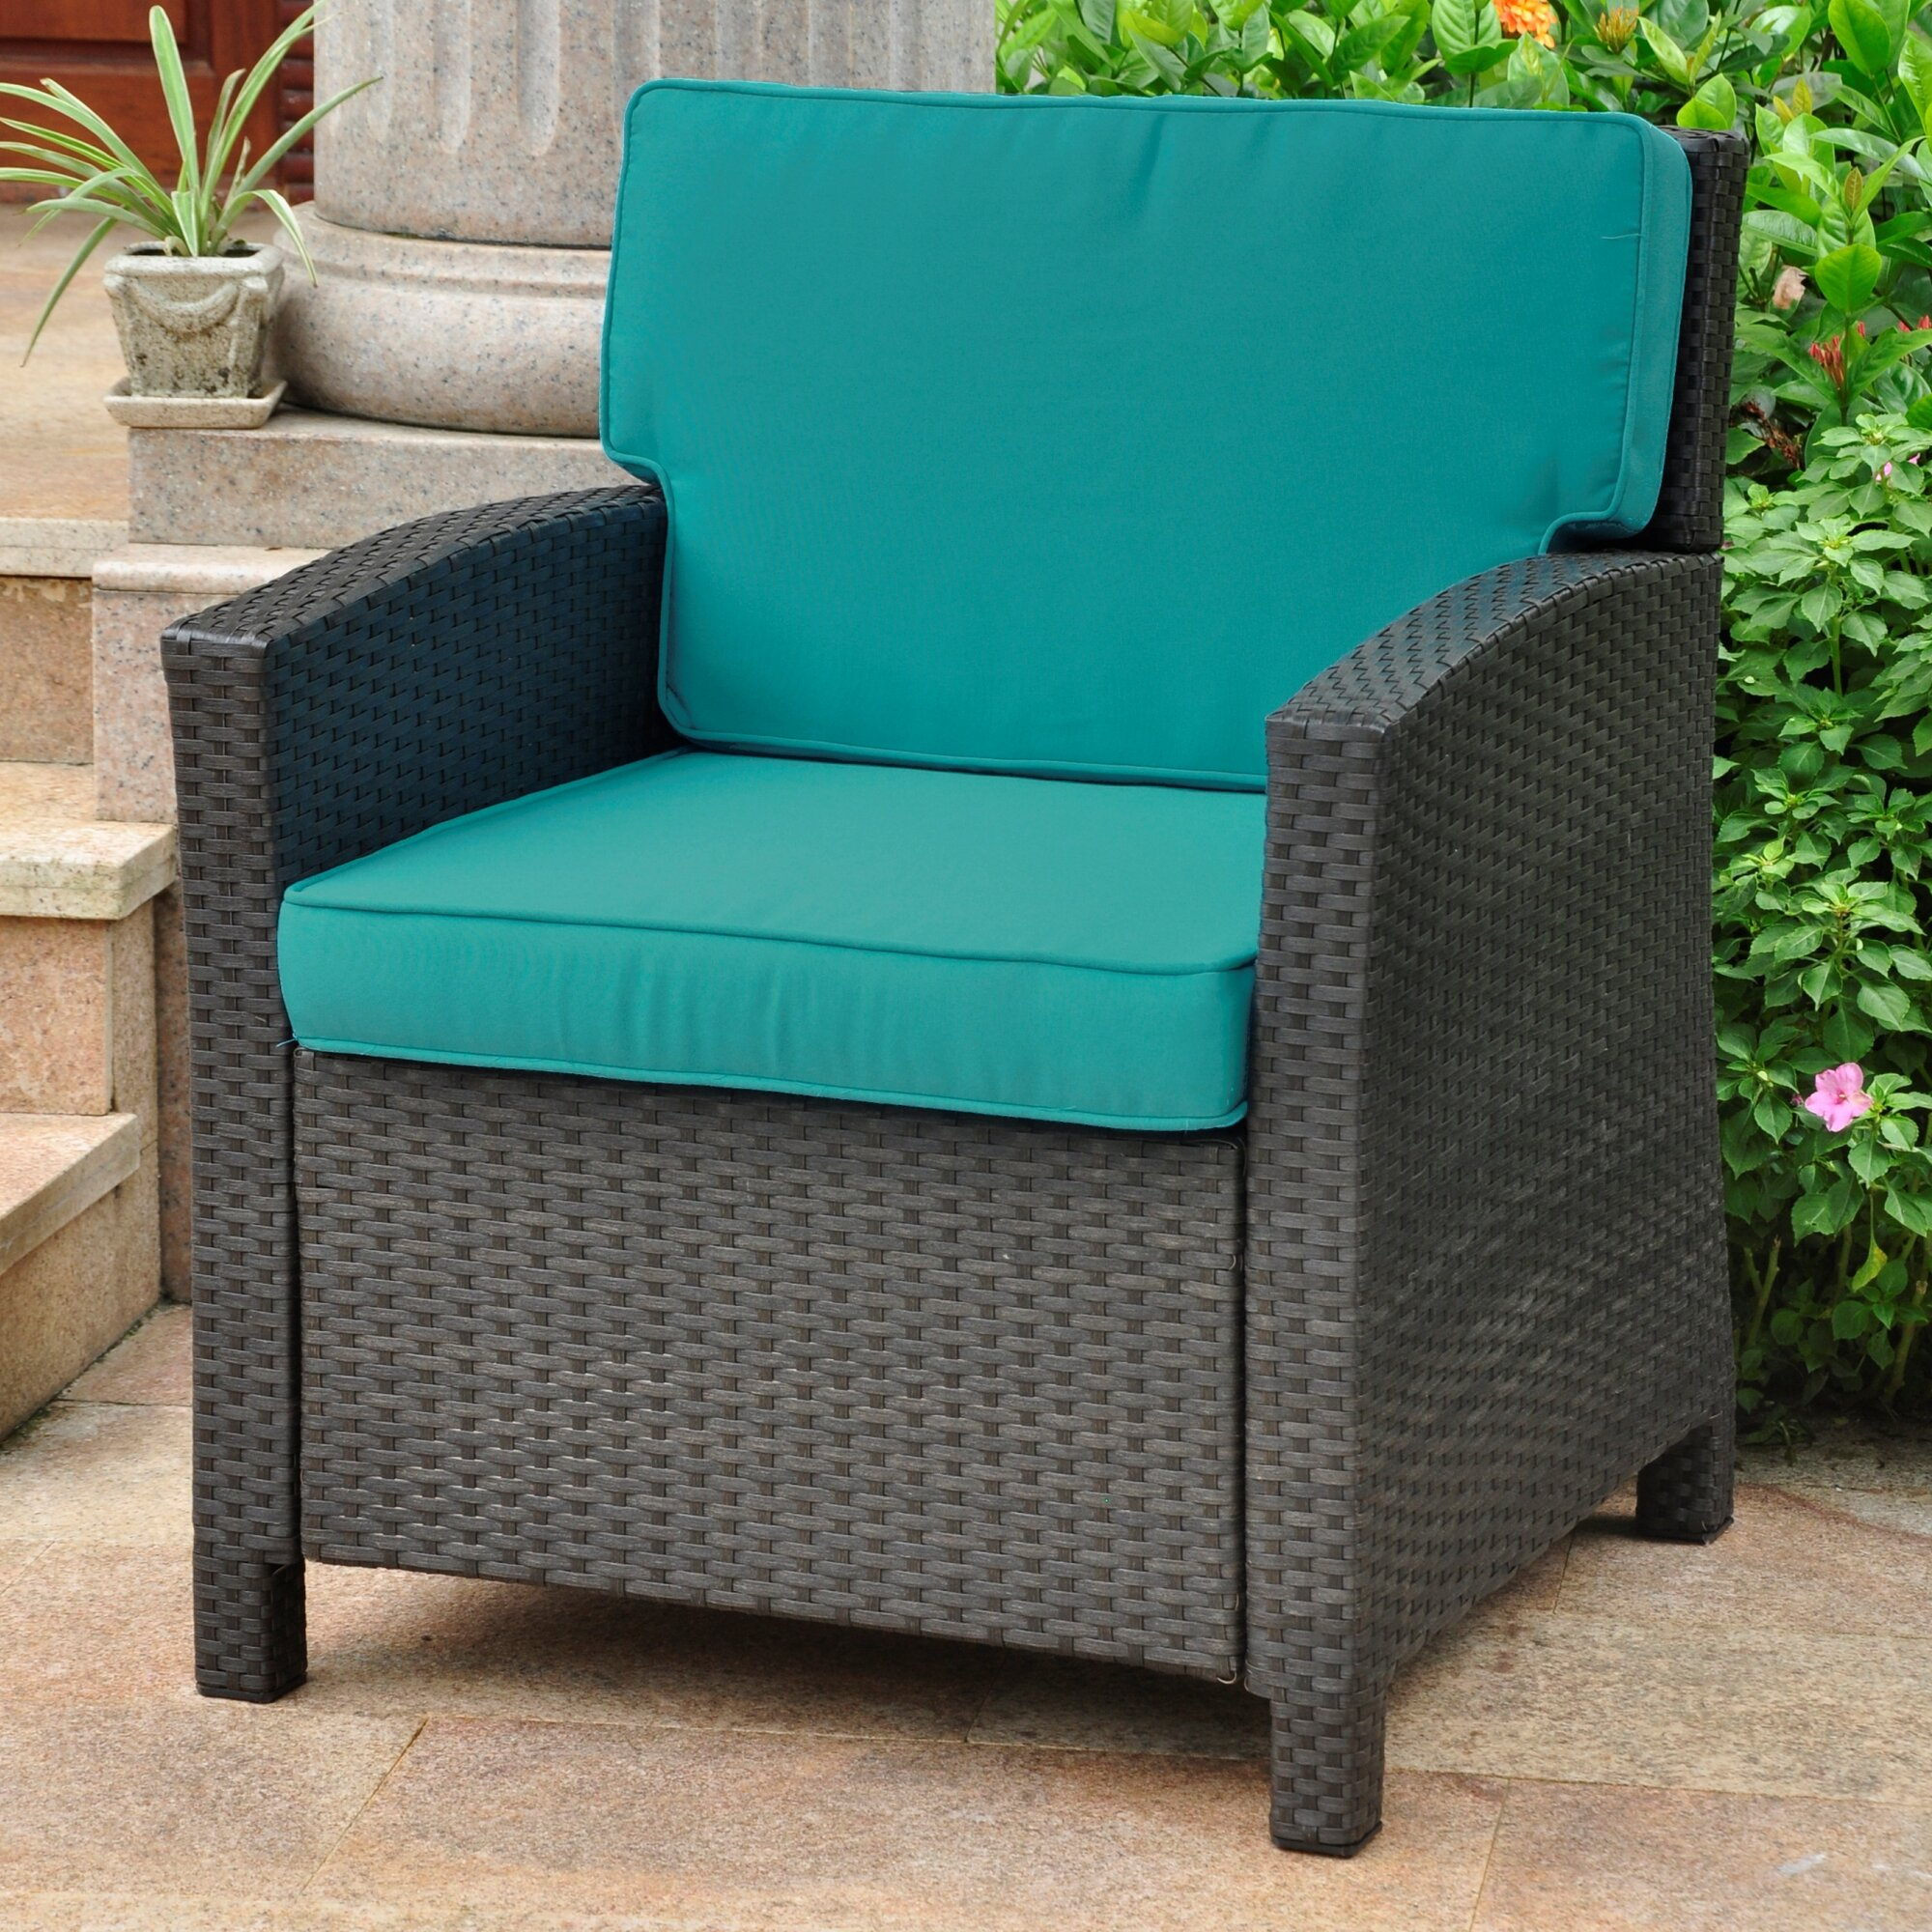 Venetian Style Wicker Resin Modern Outdoor Patio Pool Chair with Color Cushio